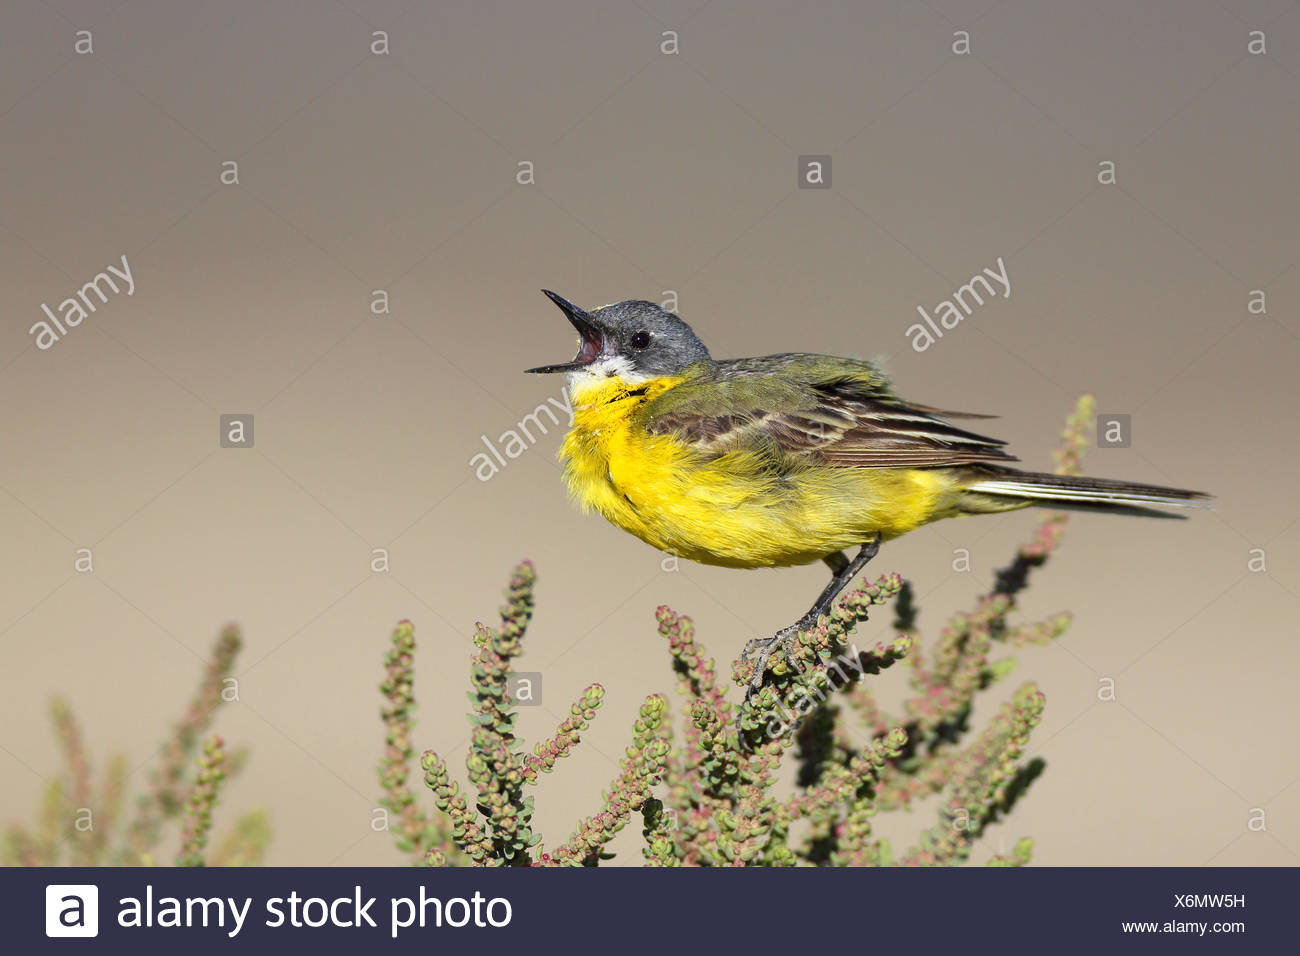 Ashy-headed Wagtail, Yellow wagtail (Motacilla flava cinereocapilla), calling male sitting on a succulent shrub, France, Camargue - Stock Image